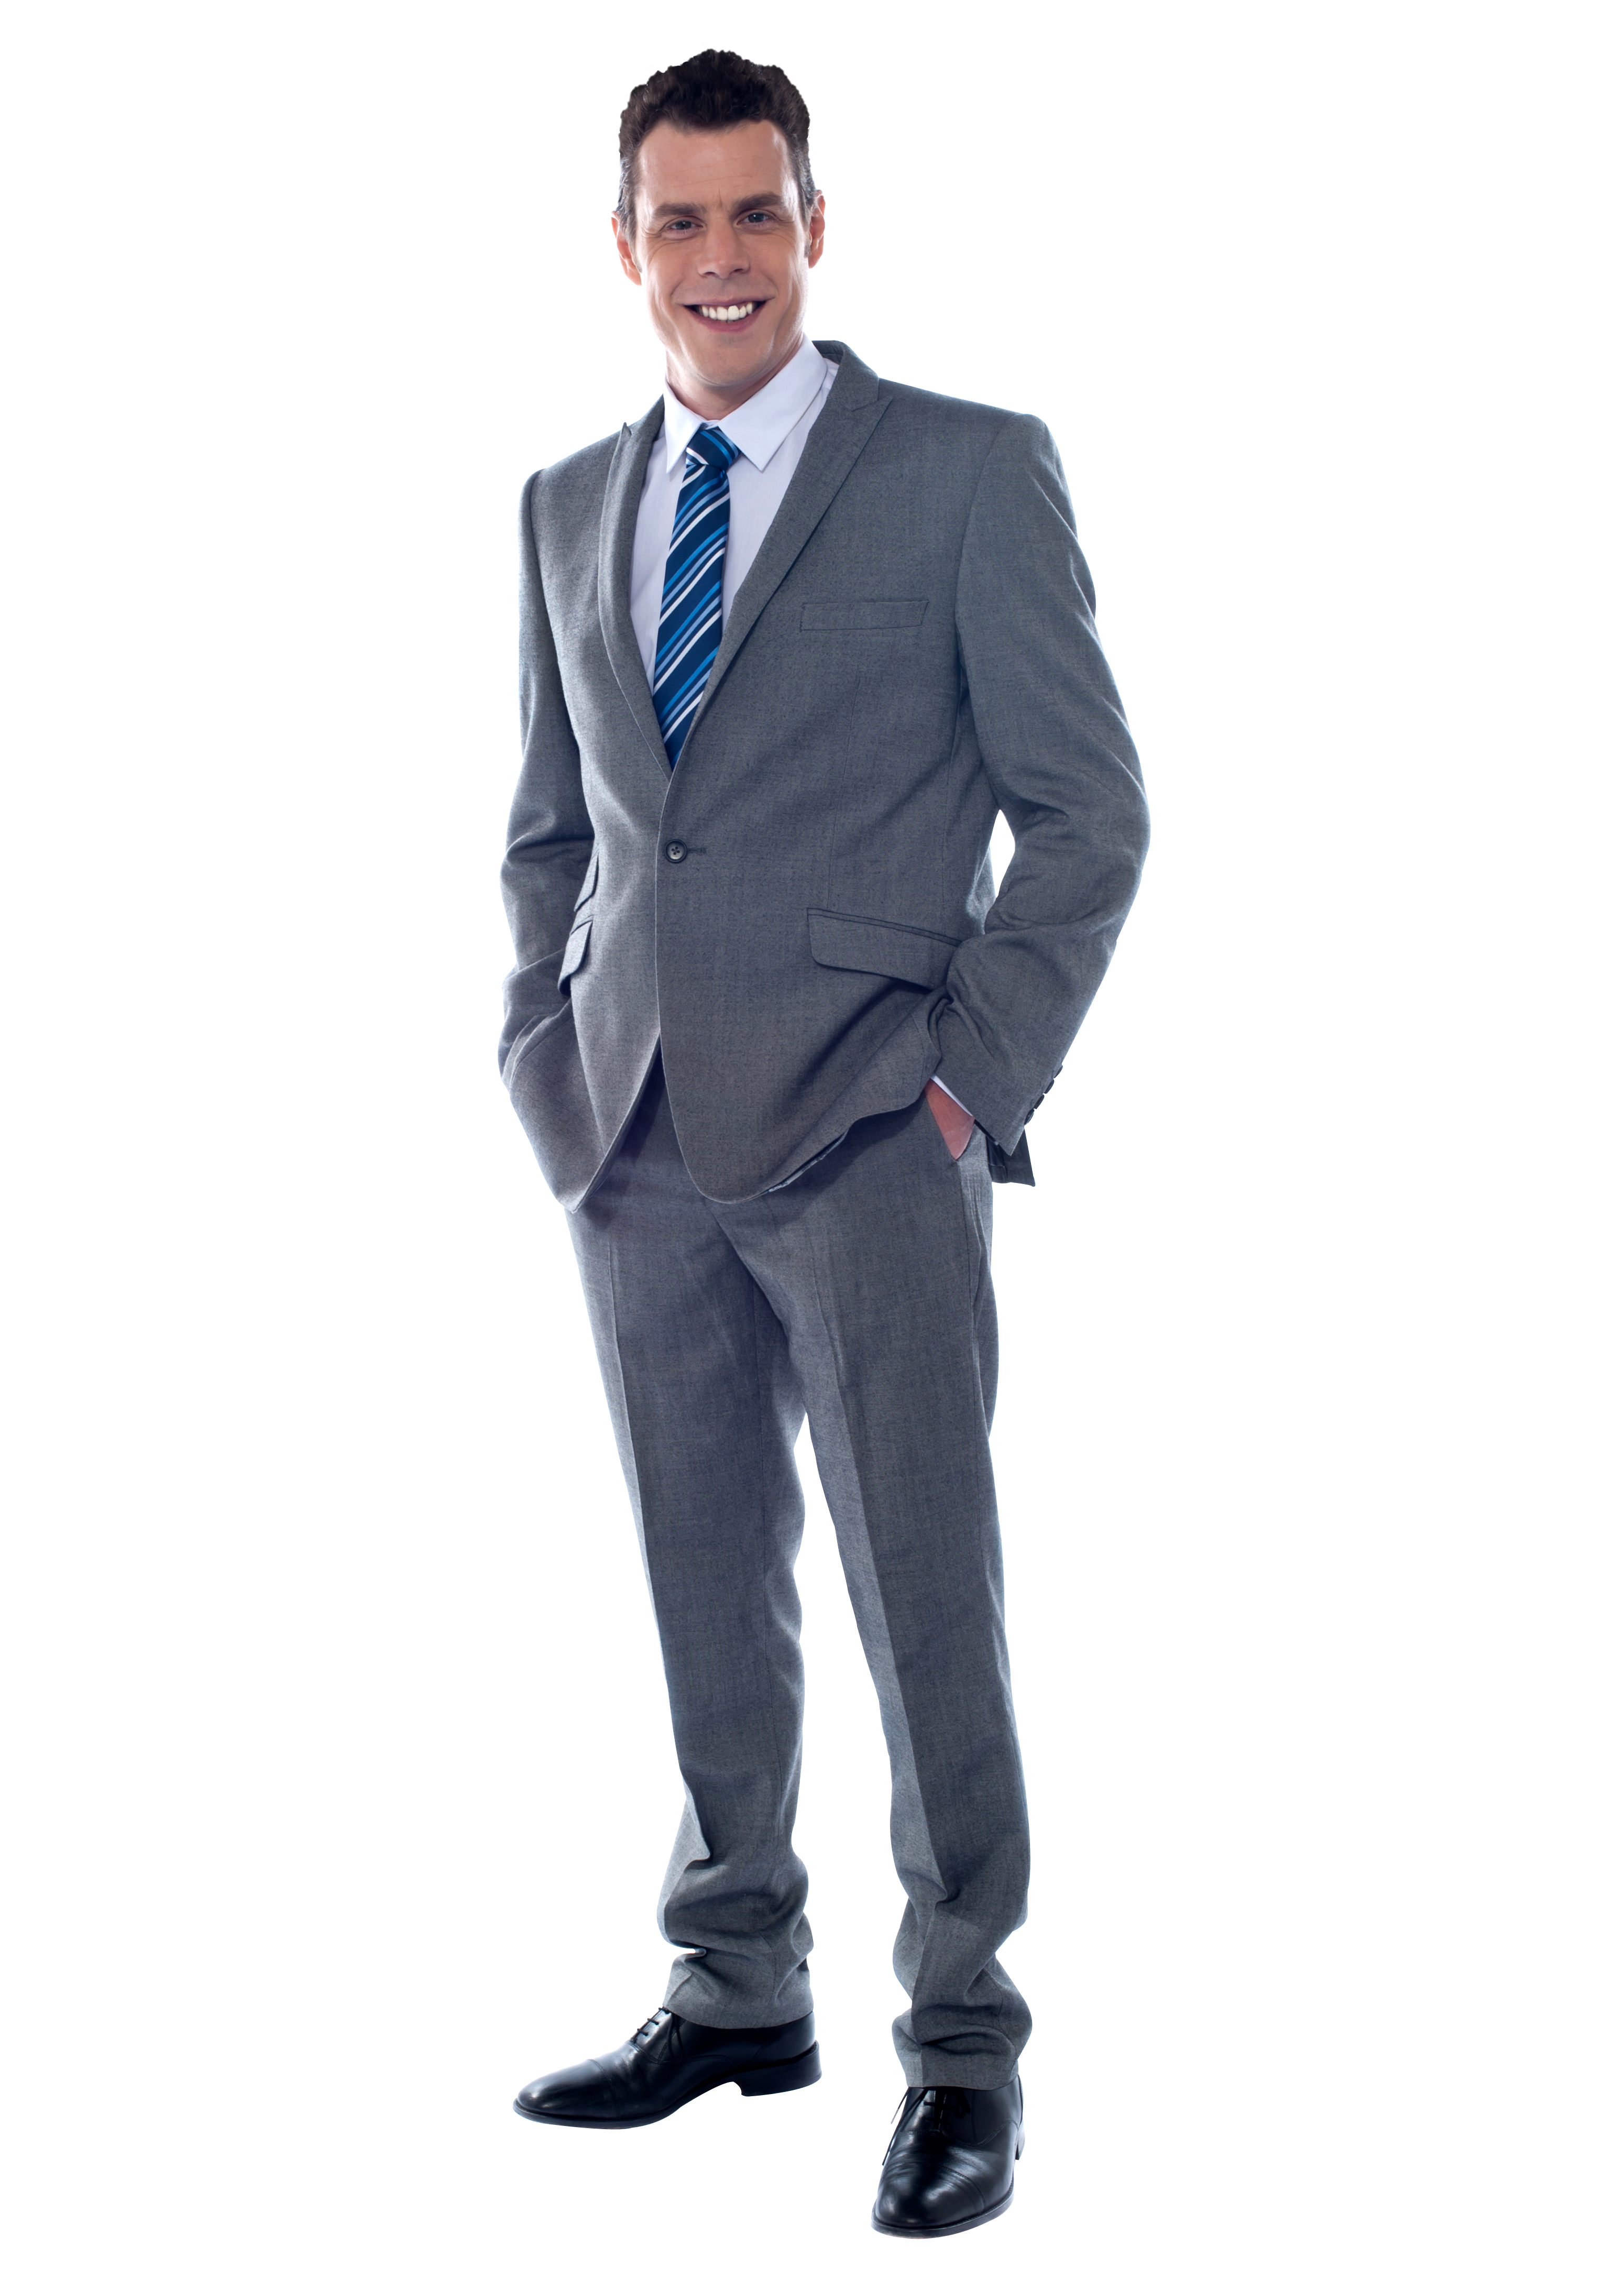 Men In Suit PNG Image